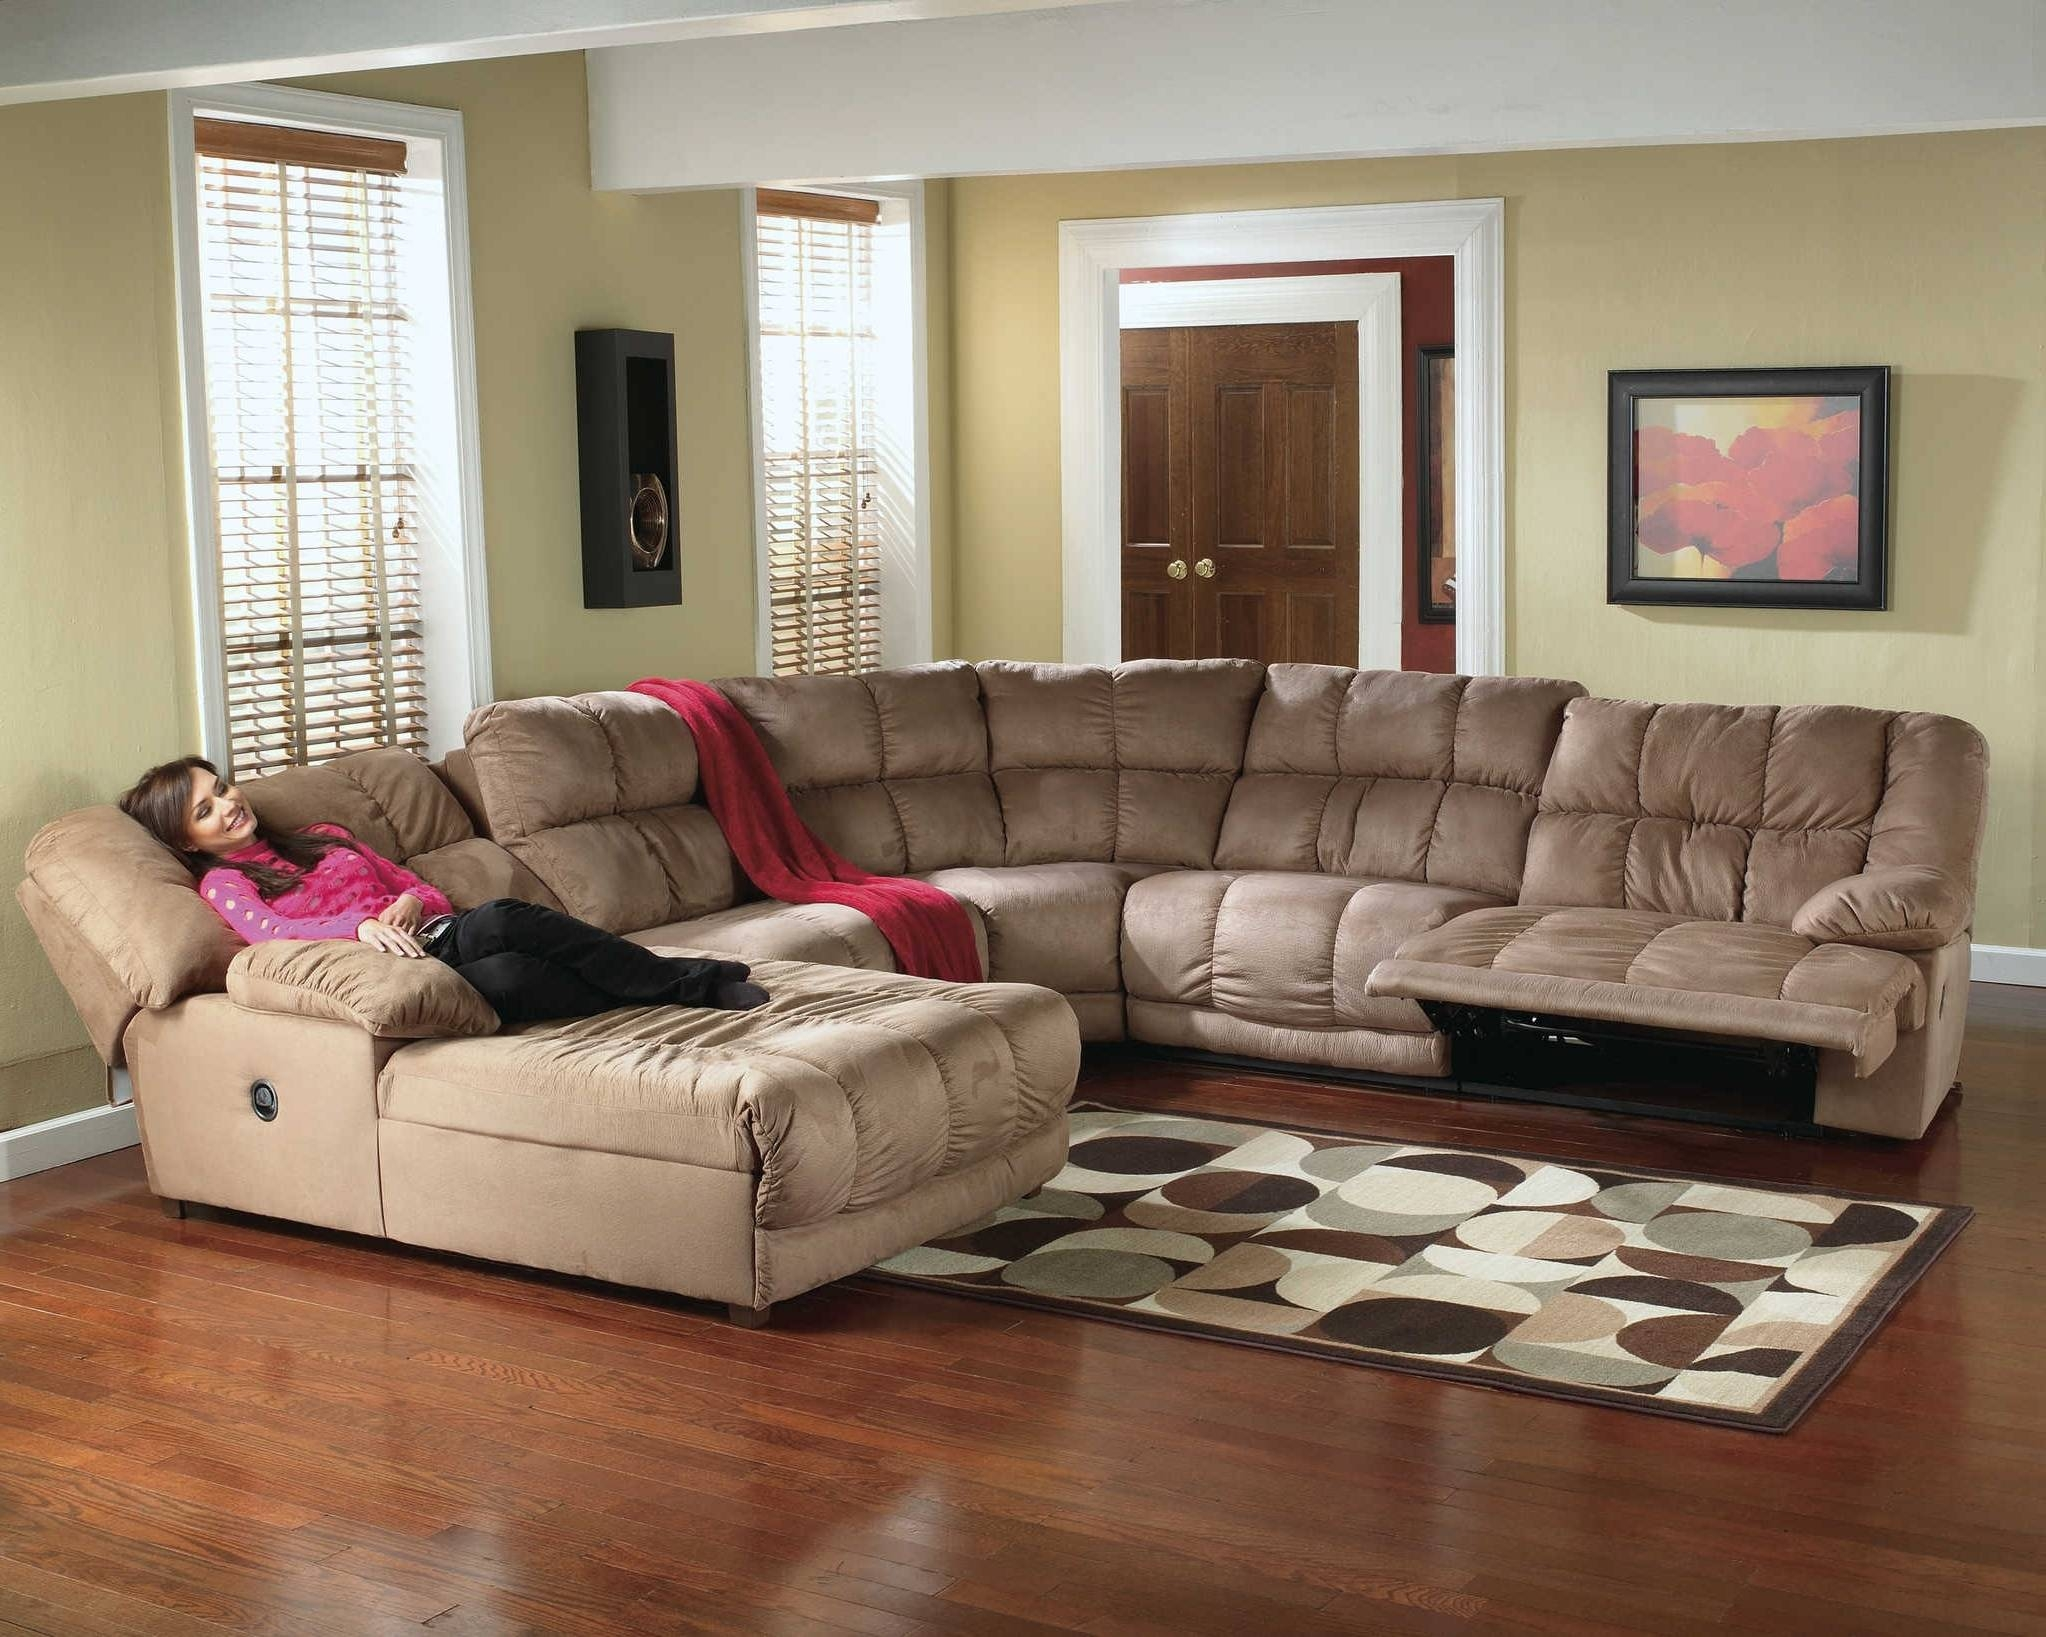 Sofa : 7 Seat Sectional Sofa Popular Home Design Creative On 7 for 7 Seat Sectional Sofa (Image 17 of 30)